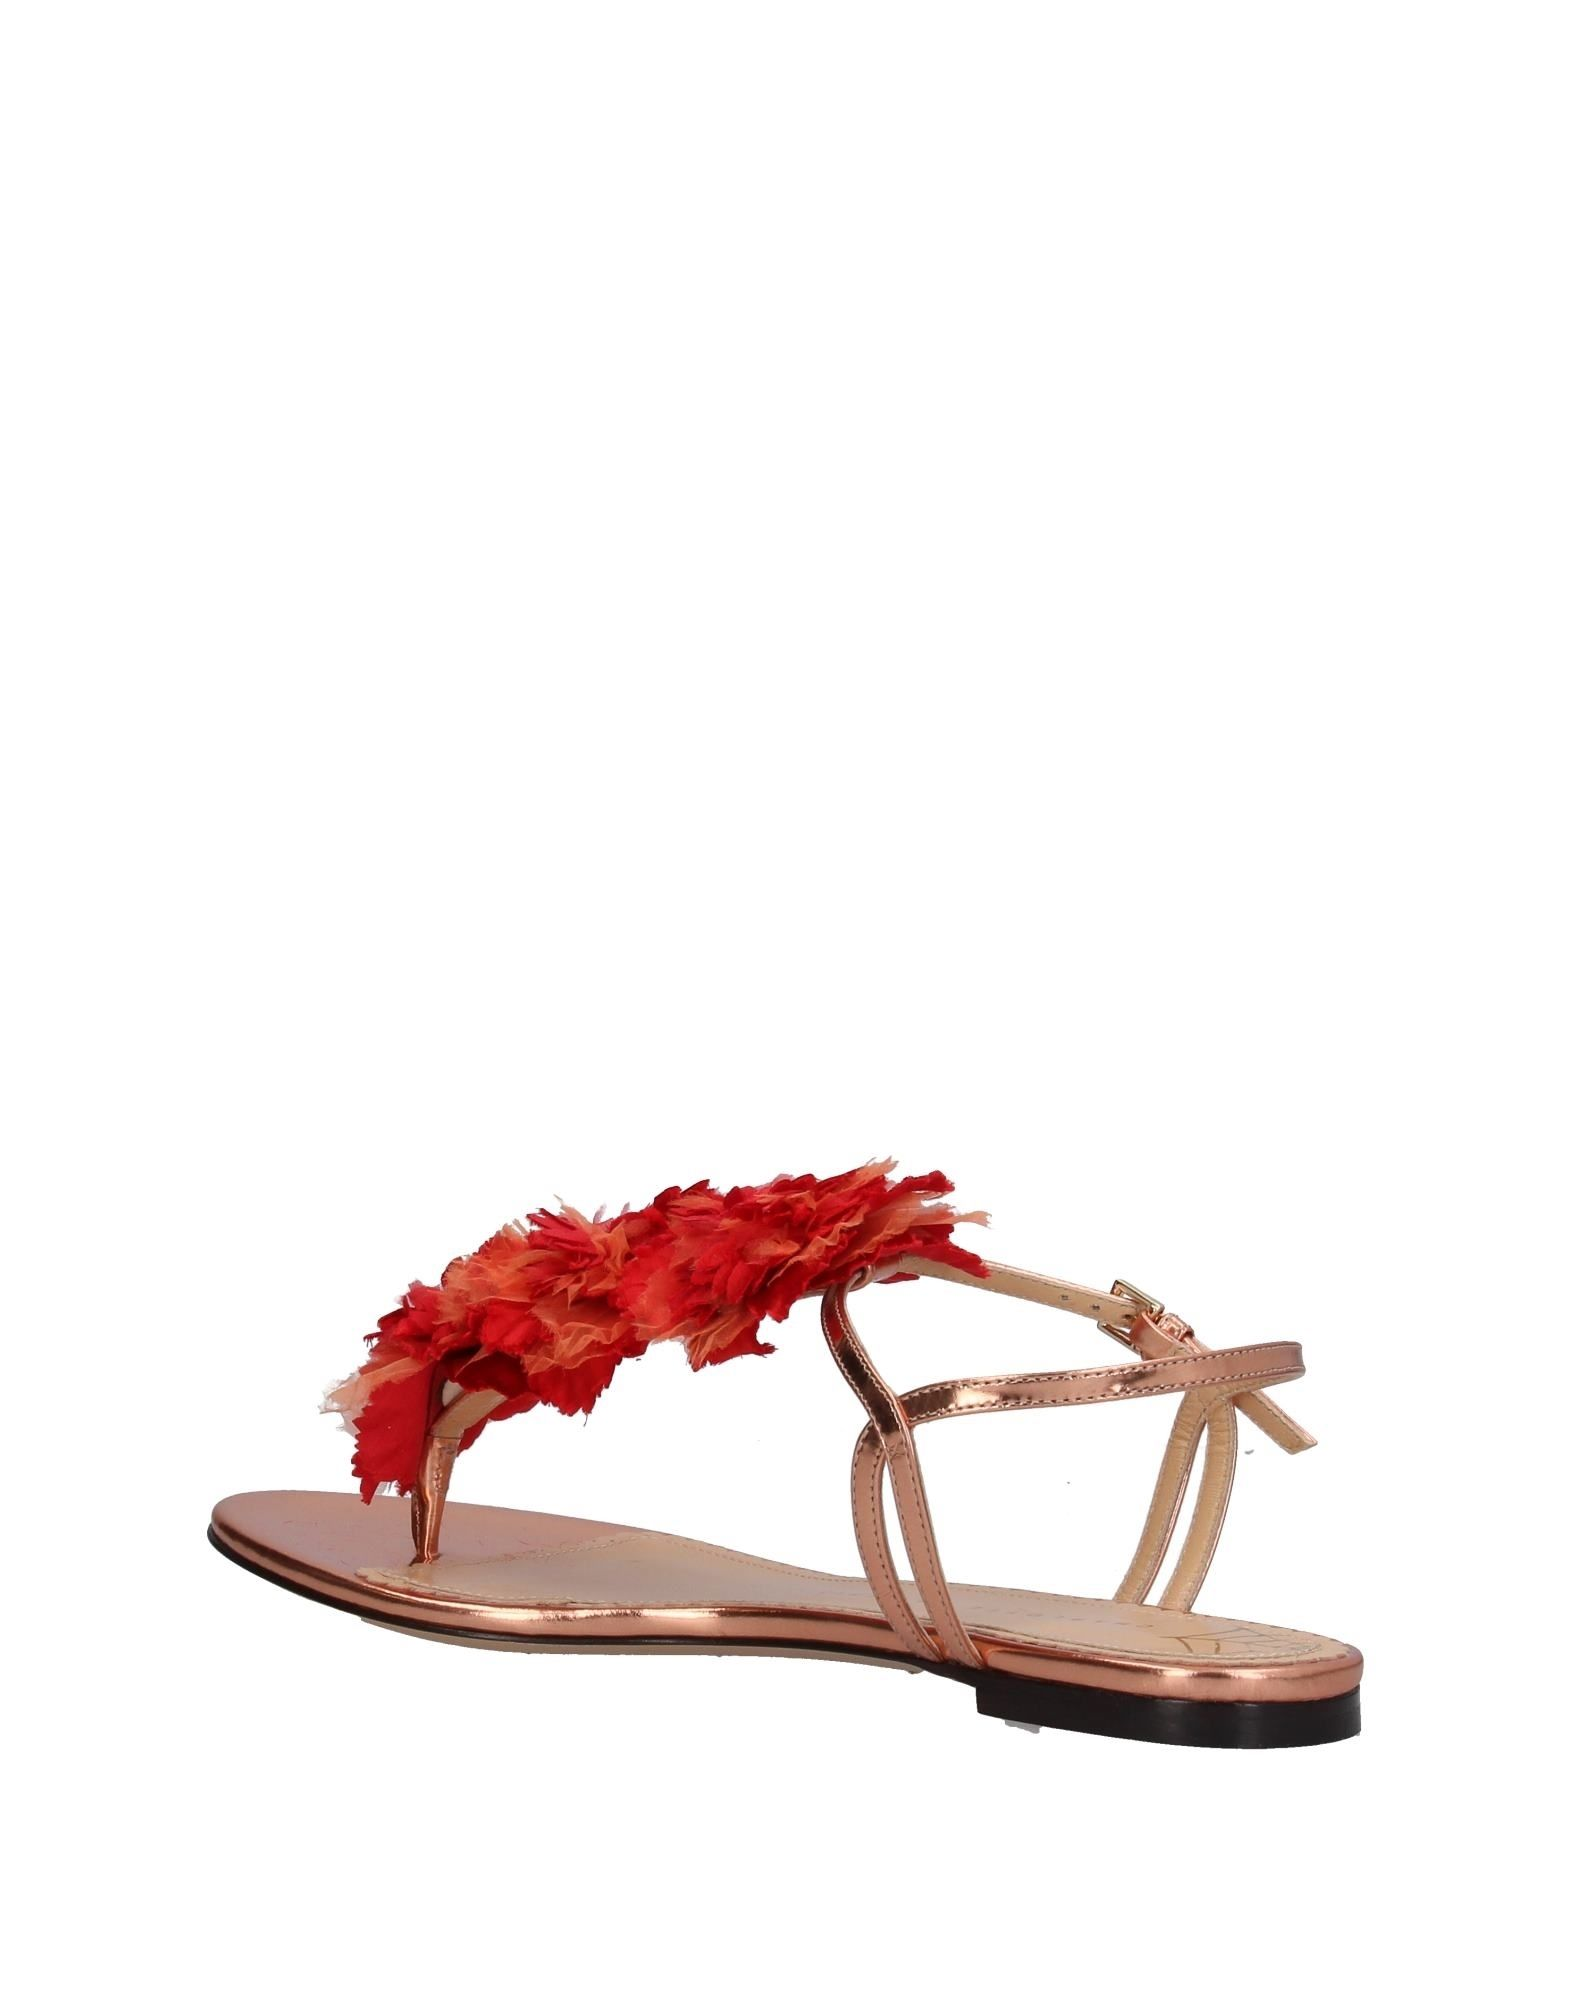 Tongs Charlotte Olympia Femme - Tongs Charlotte Olympia sur